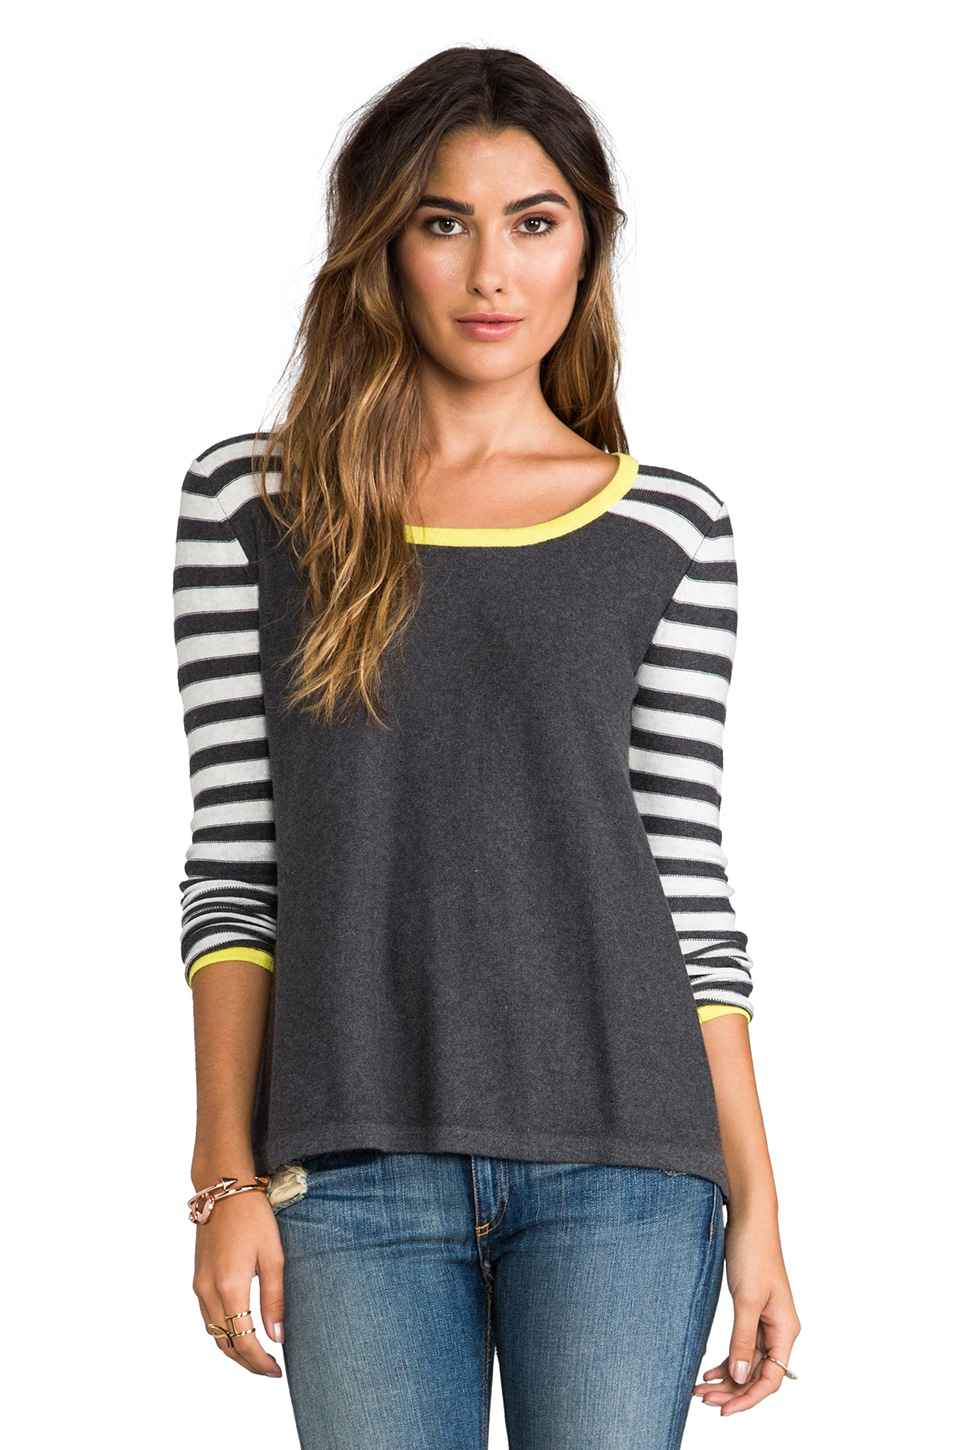 Central Park West Astor Court Striped Sweater in Charcoal